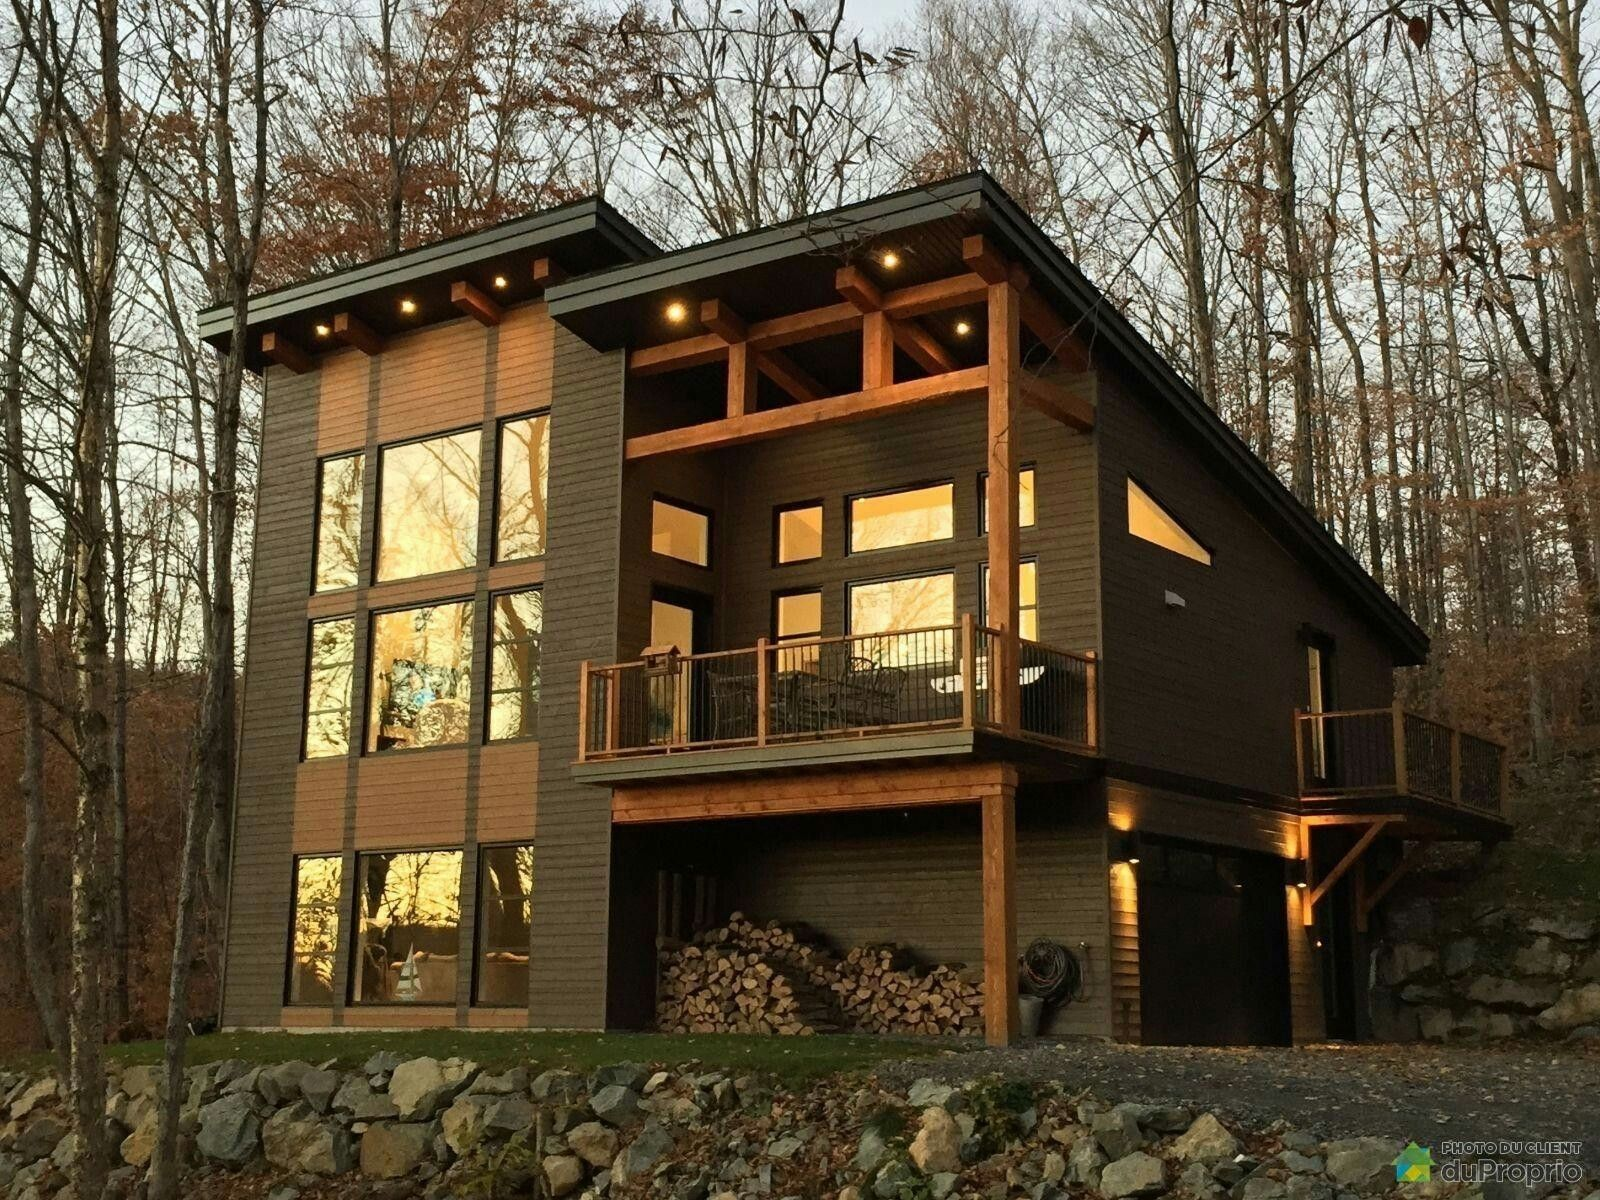 21 Modern Mountain Home Plans Home Decor Interior Mountain House Plans Shed Roof Design House Plans